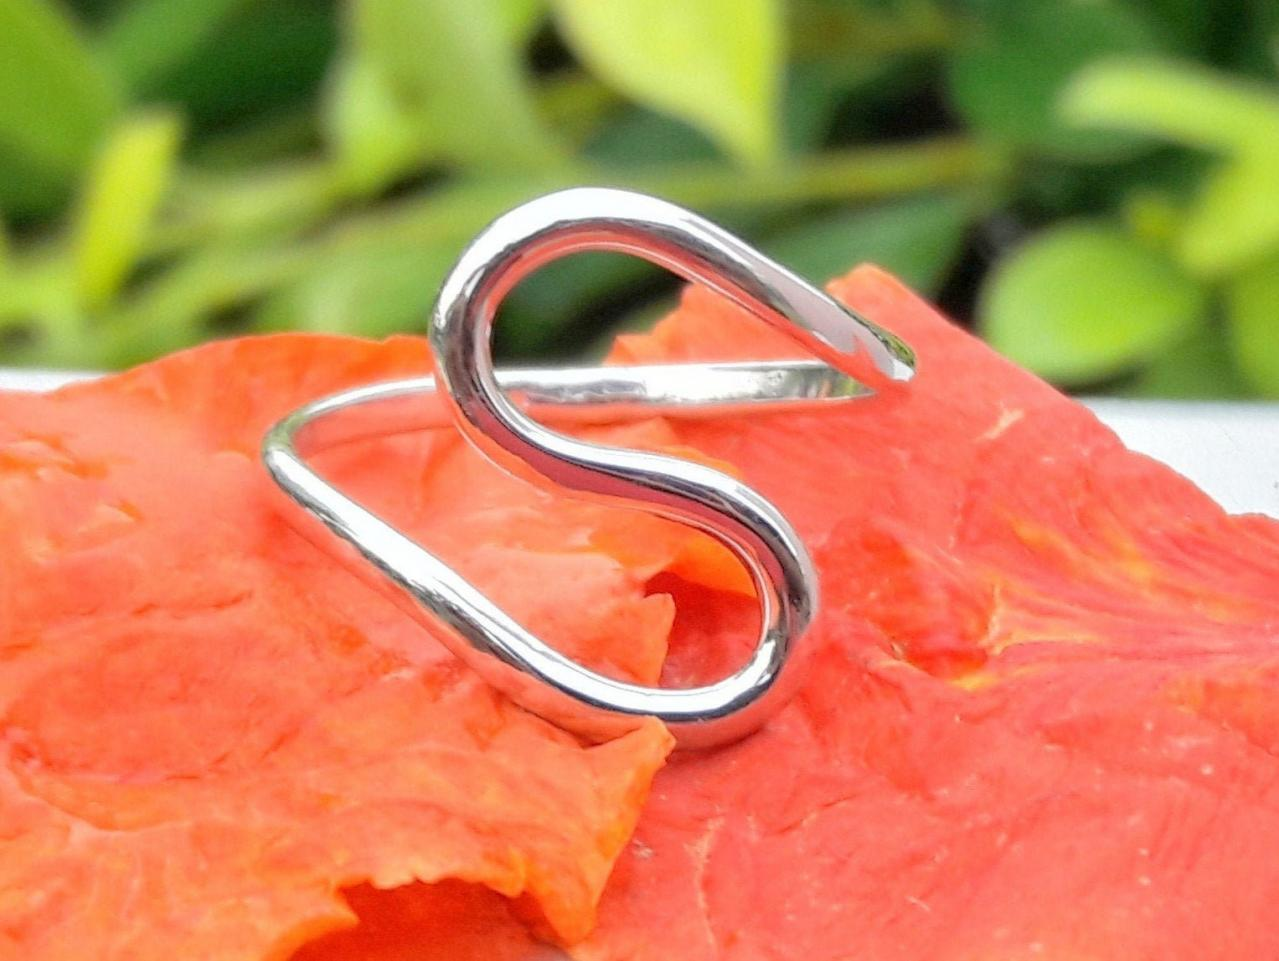 S Shaped Silver Ring, Handmade Jewelry, Silver Jewelry, Statement Jewelry, Solitaire Ring, Stack-able Jewelry, Women's Jewelry, Gift For Her